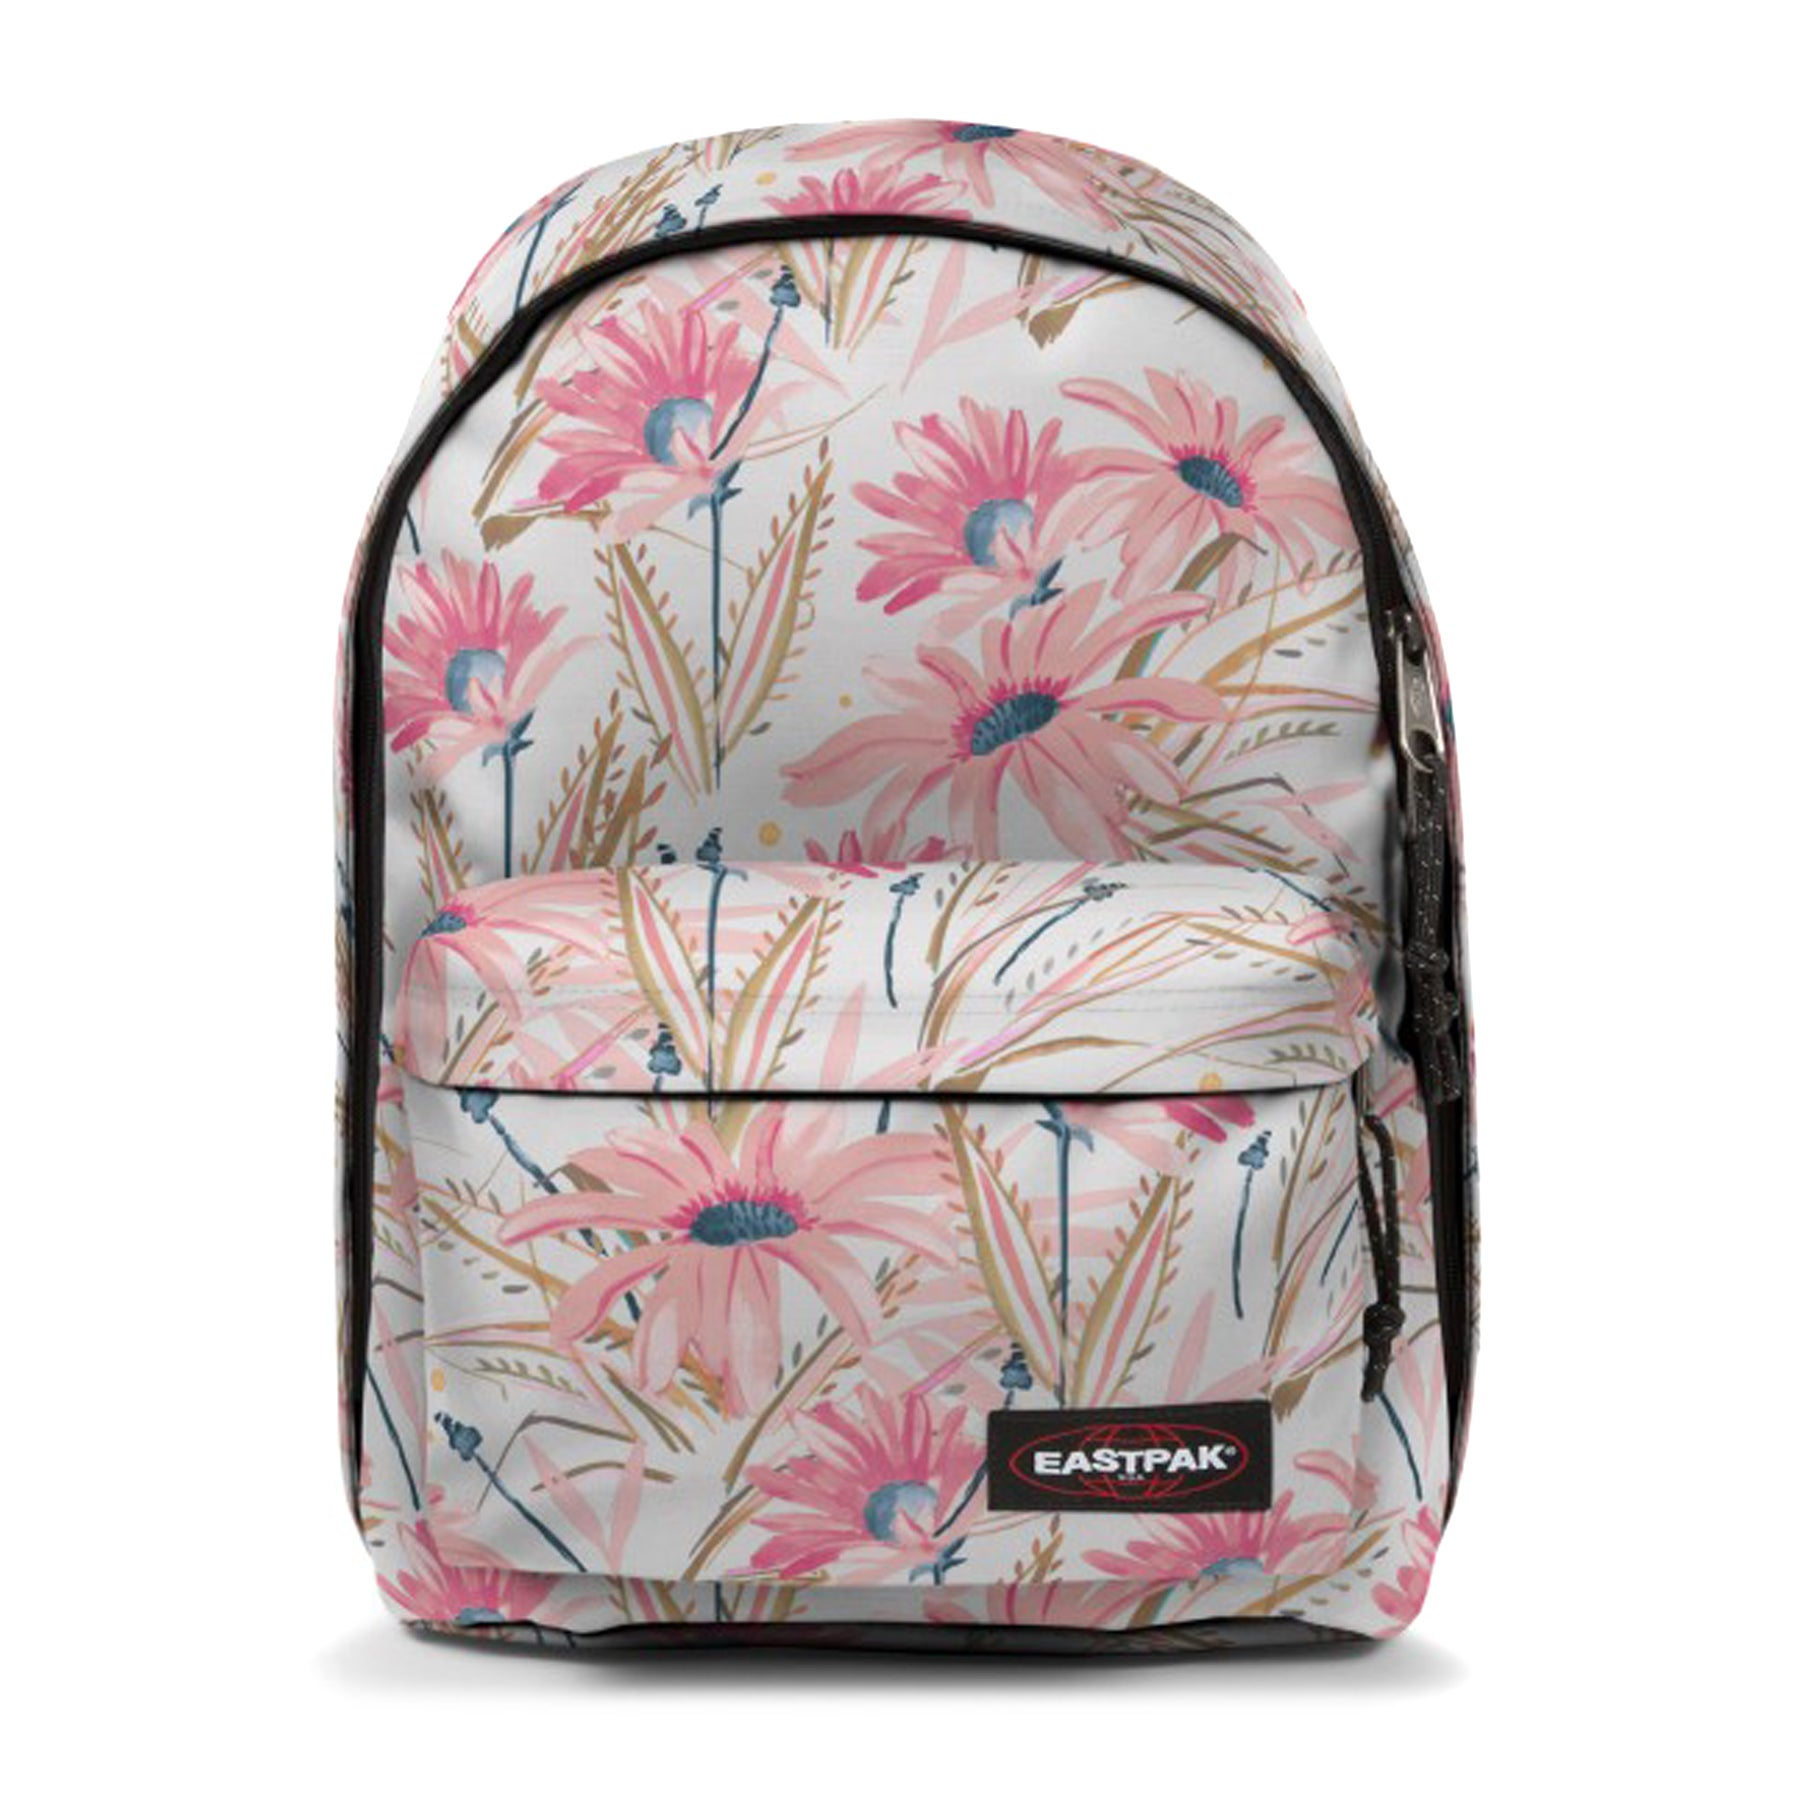 Eastpak Out Of Office Backpack - Whimsy Light